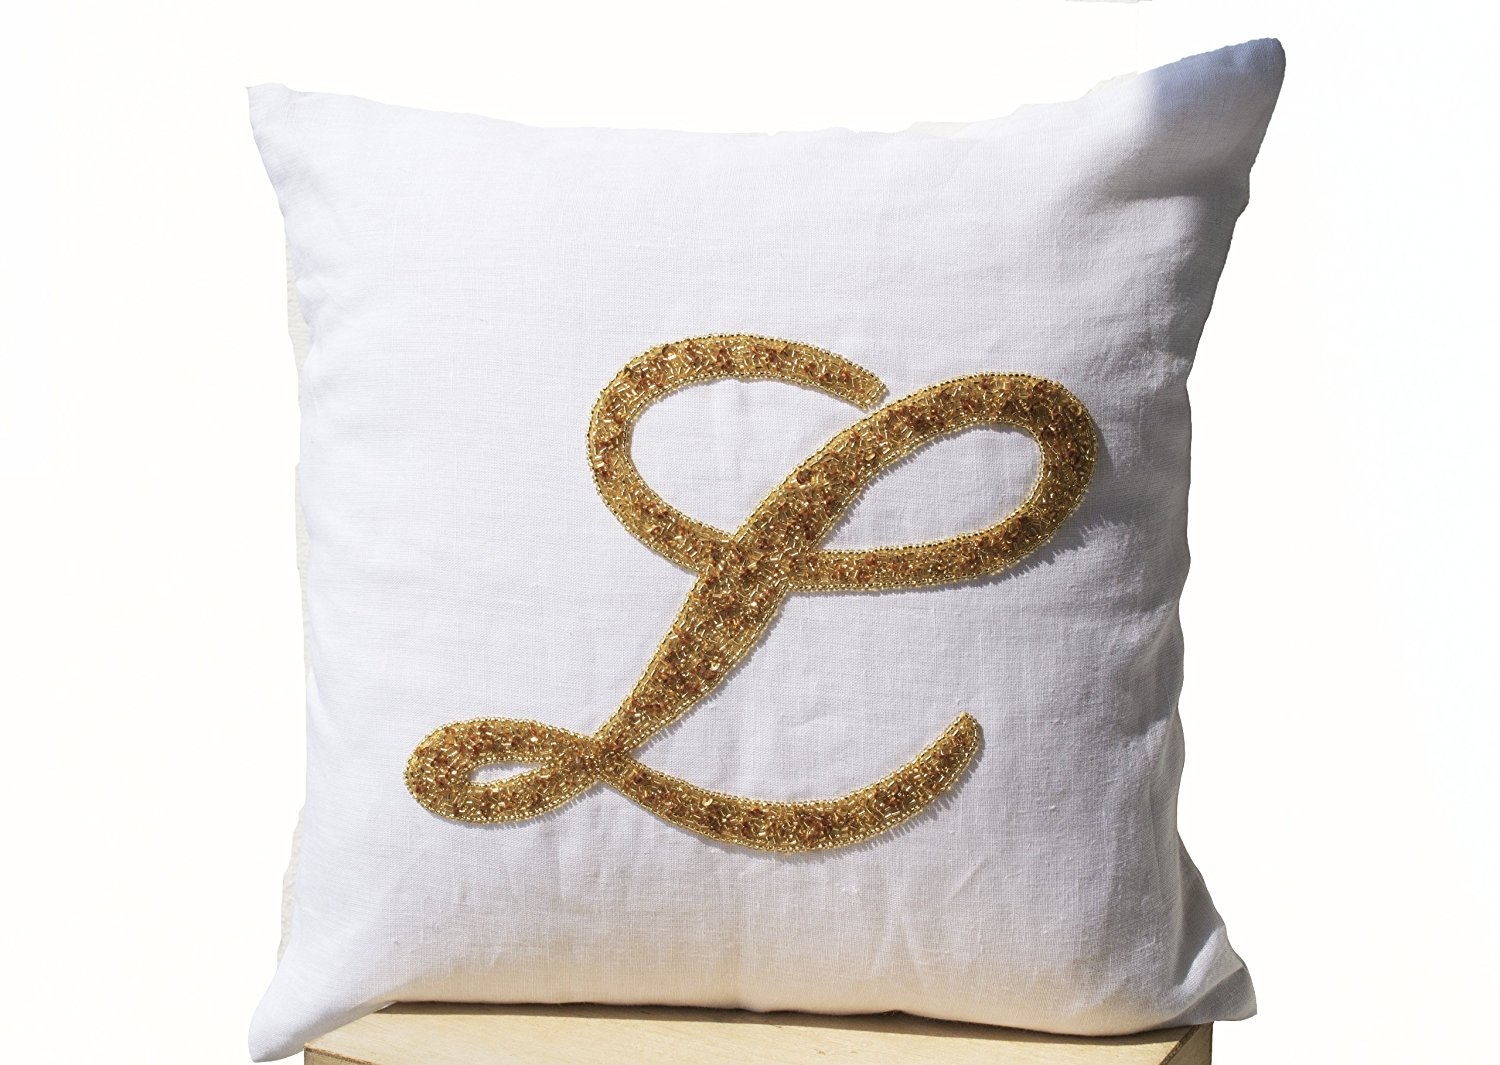 Amore Beaute Handcrafted Decorative Throw Pillow Covers with Customized  Monogram Letter in Gold Sequin Detail - 2b243d22e